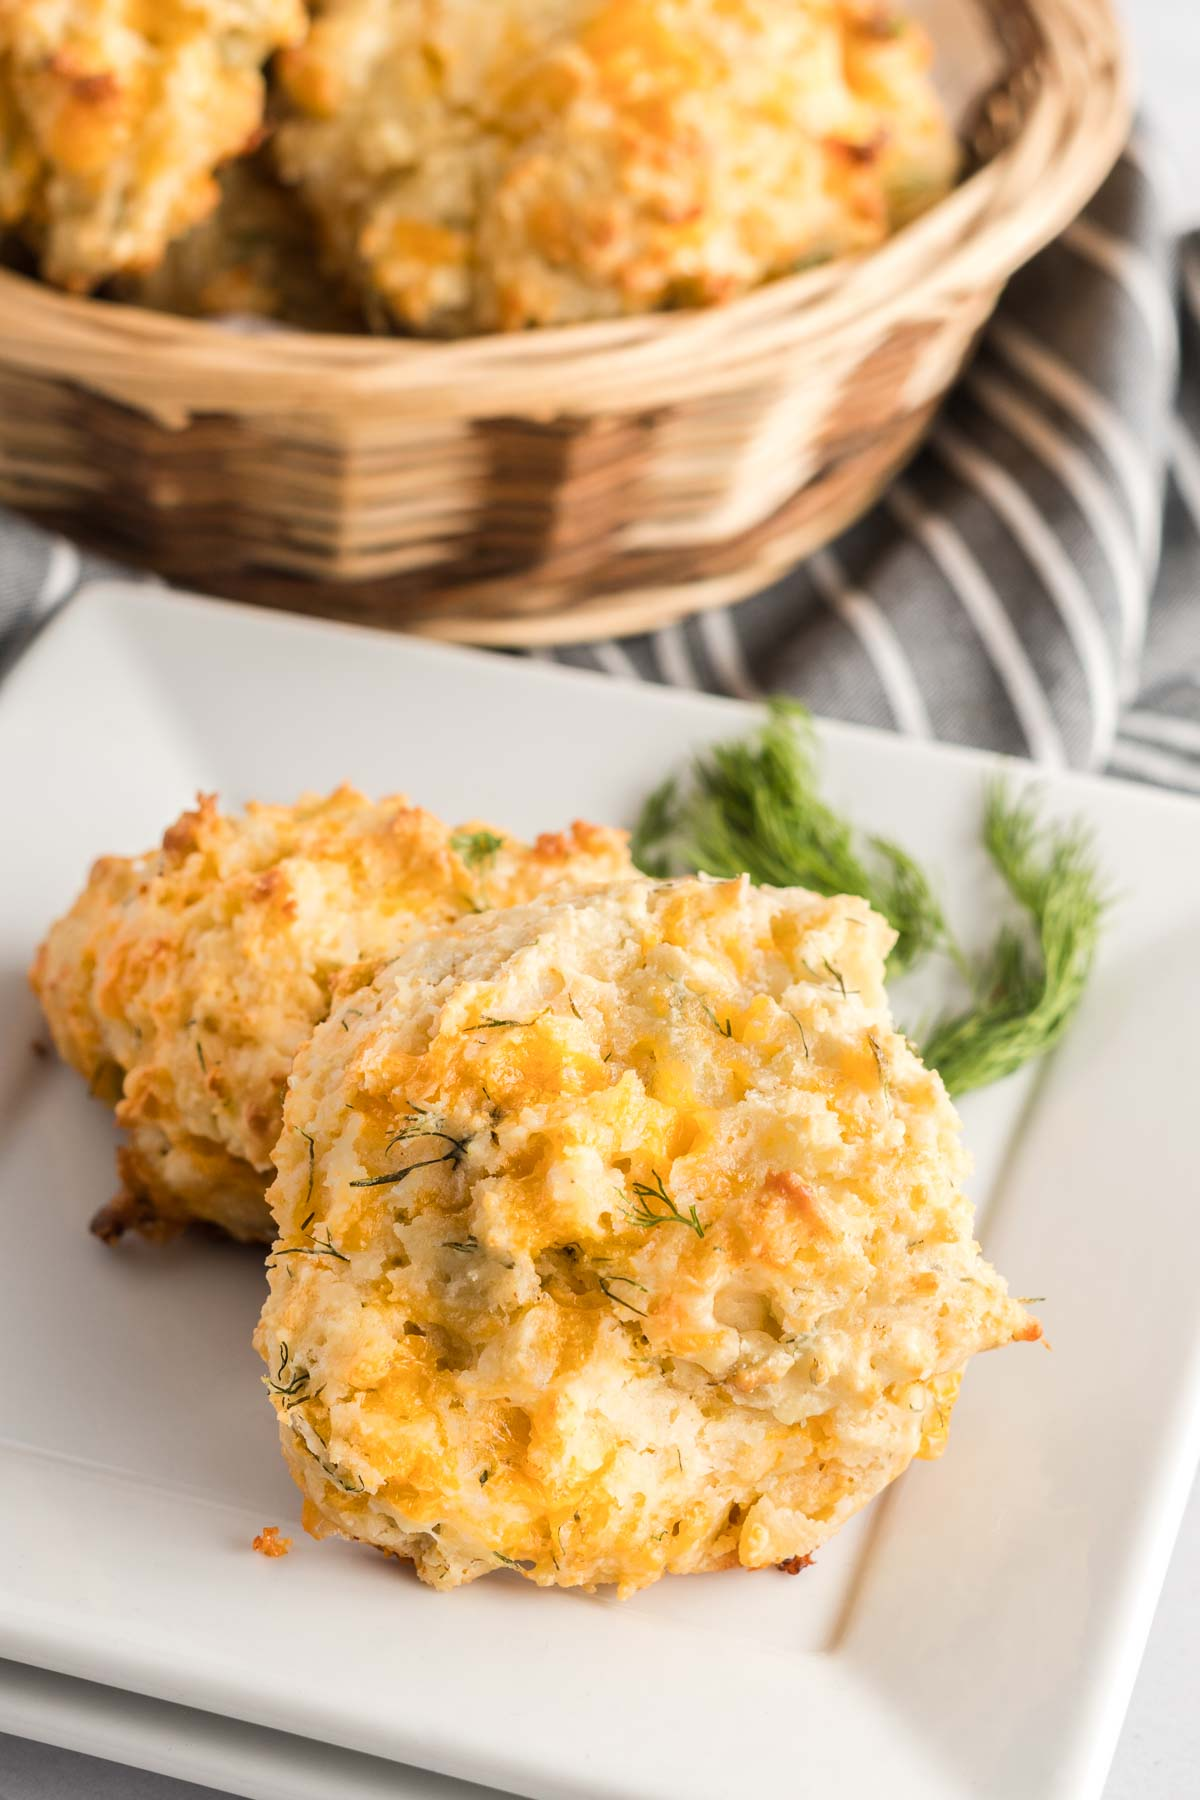 Two biscuits on a plate garnished with fresh dill and a basket of biscuits in the background.